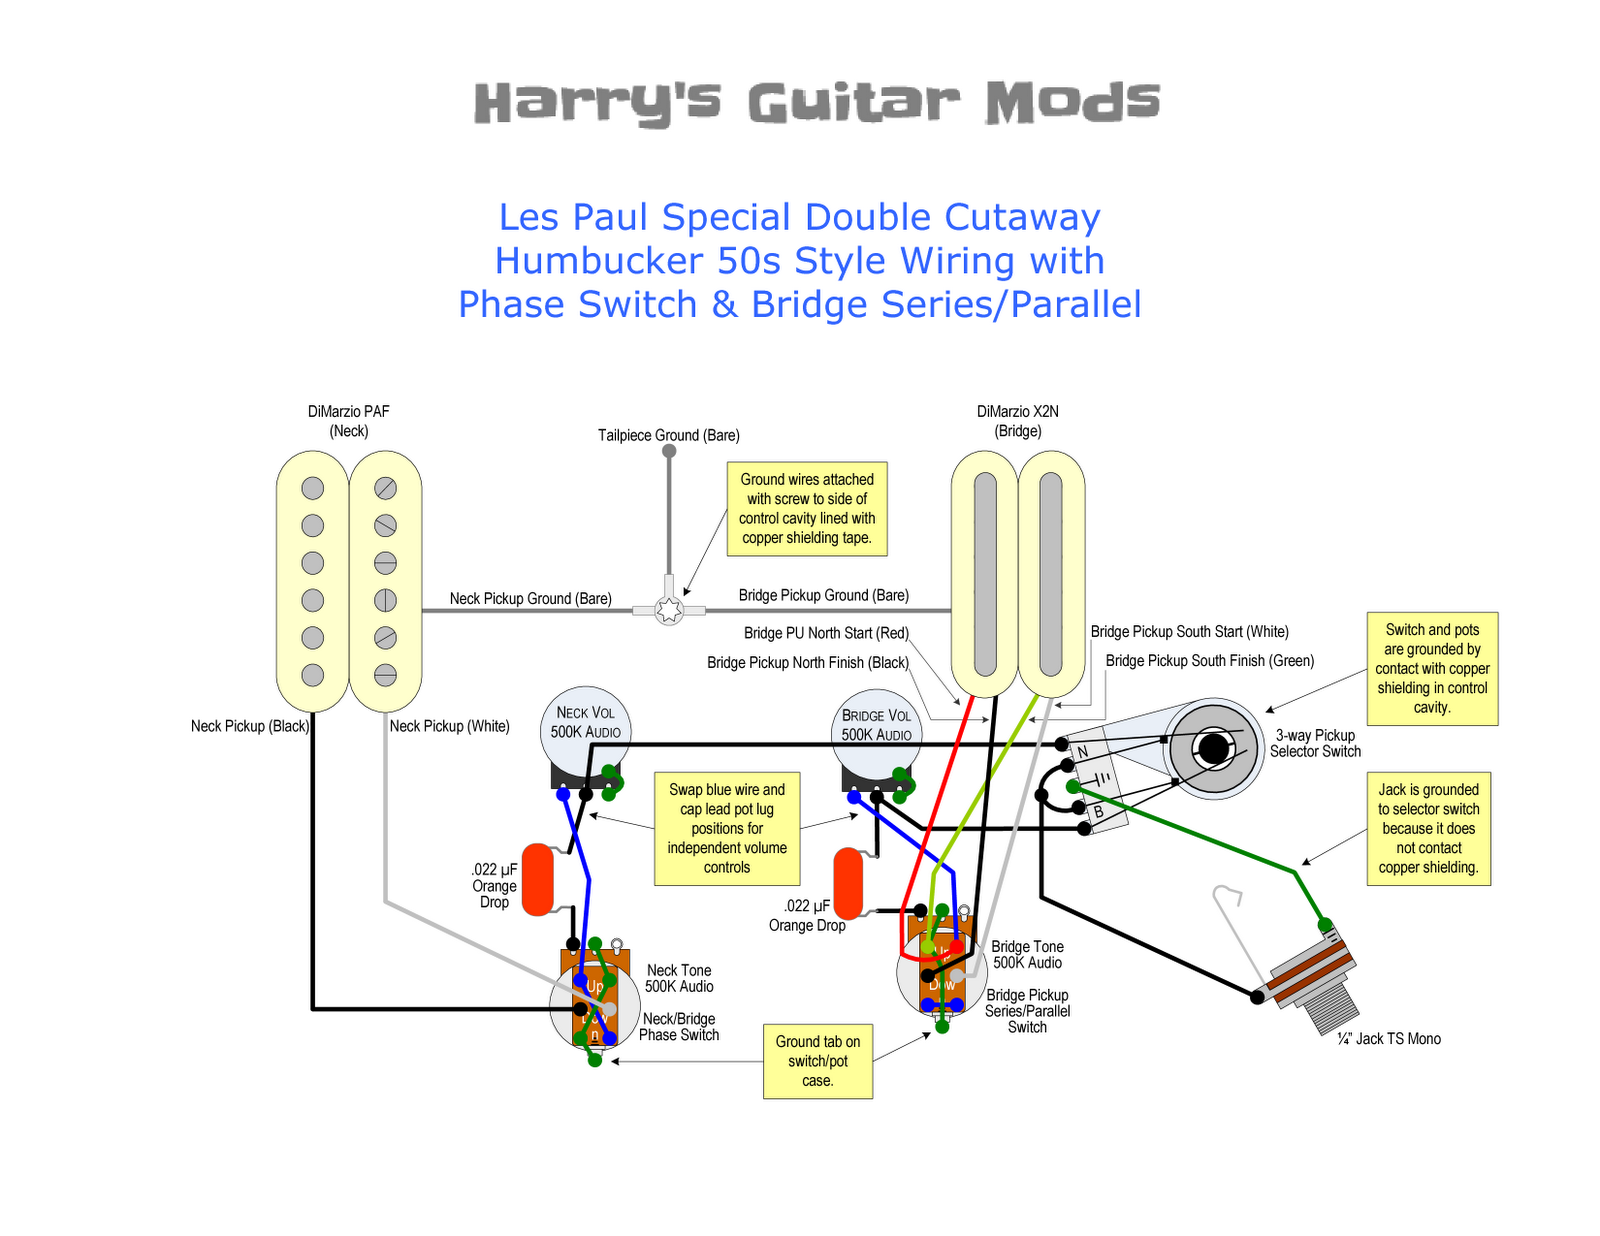 Push Pull Wiring A Switch Content Resource Of Diagram Toggle For Guitar Harry S Mods Controls Upgrade Rh Hgmods Com